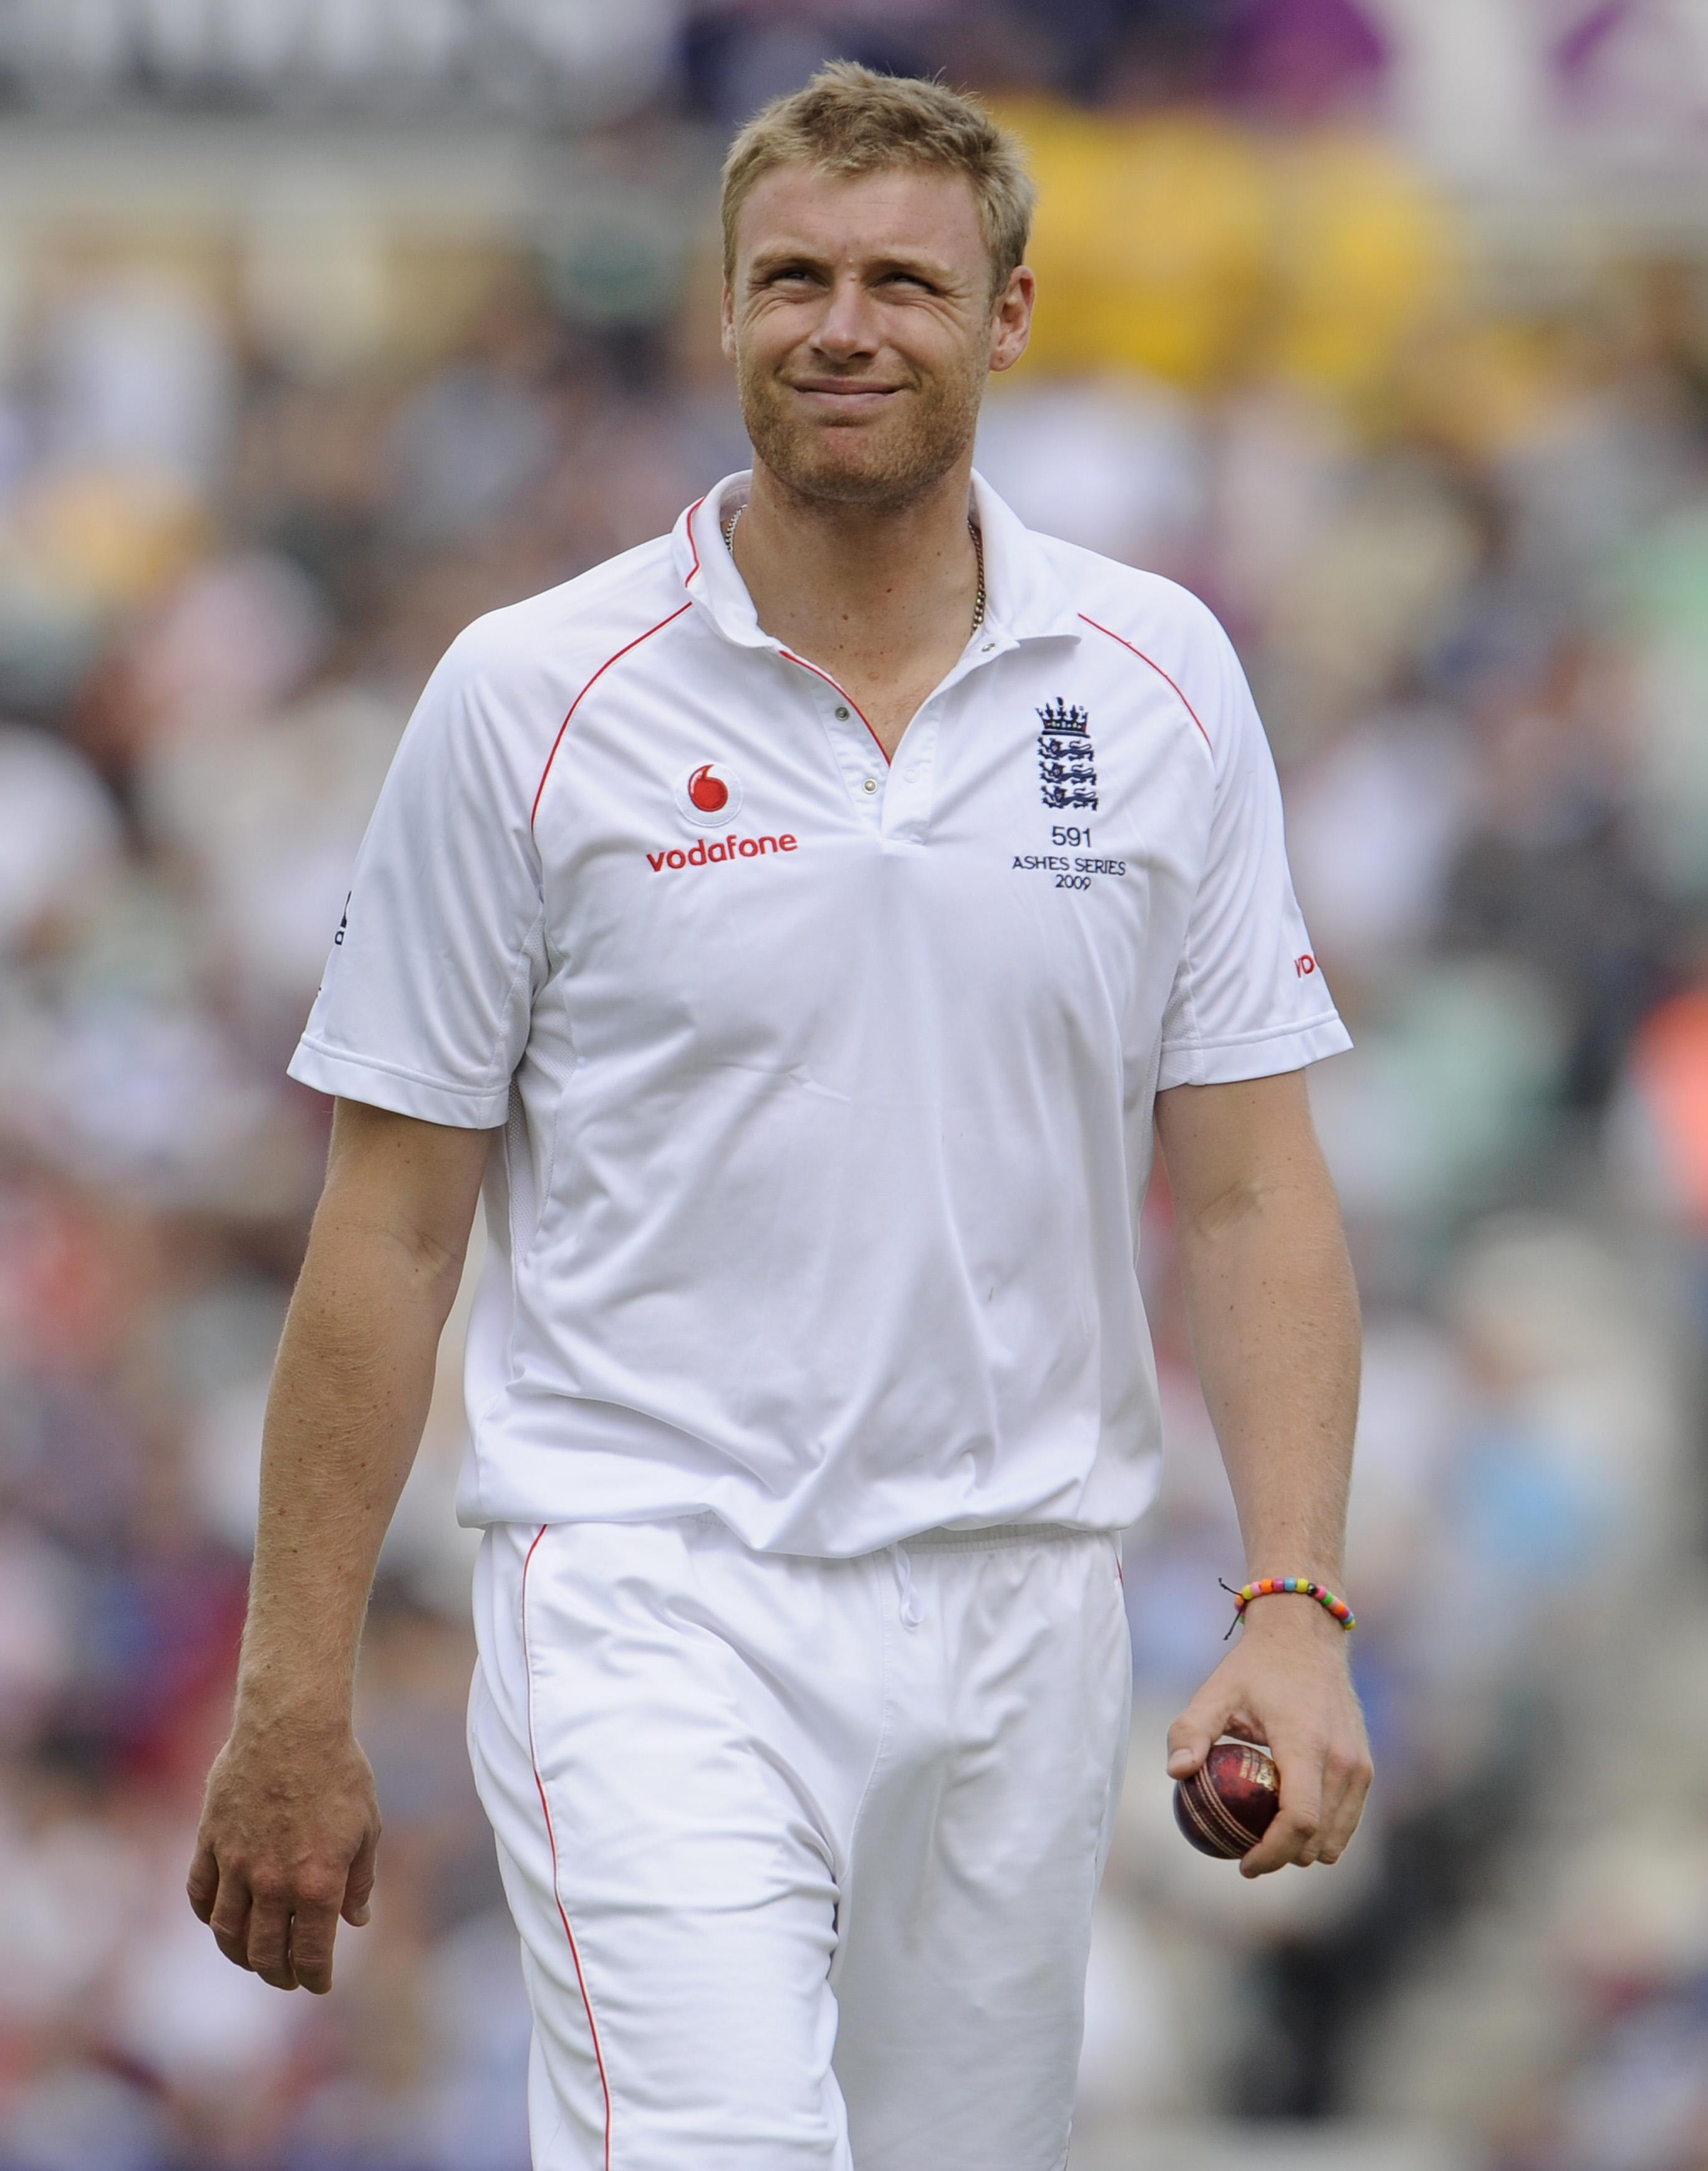 In his new book, Freddie Flintoff claims that a ghost asked him for a photo whilst he was at a hotel room in Ireland